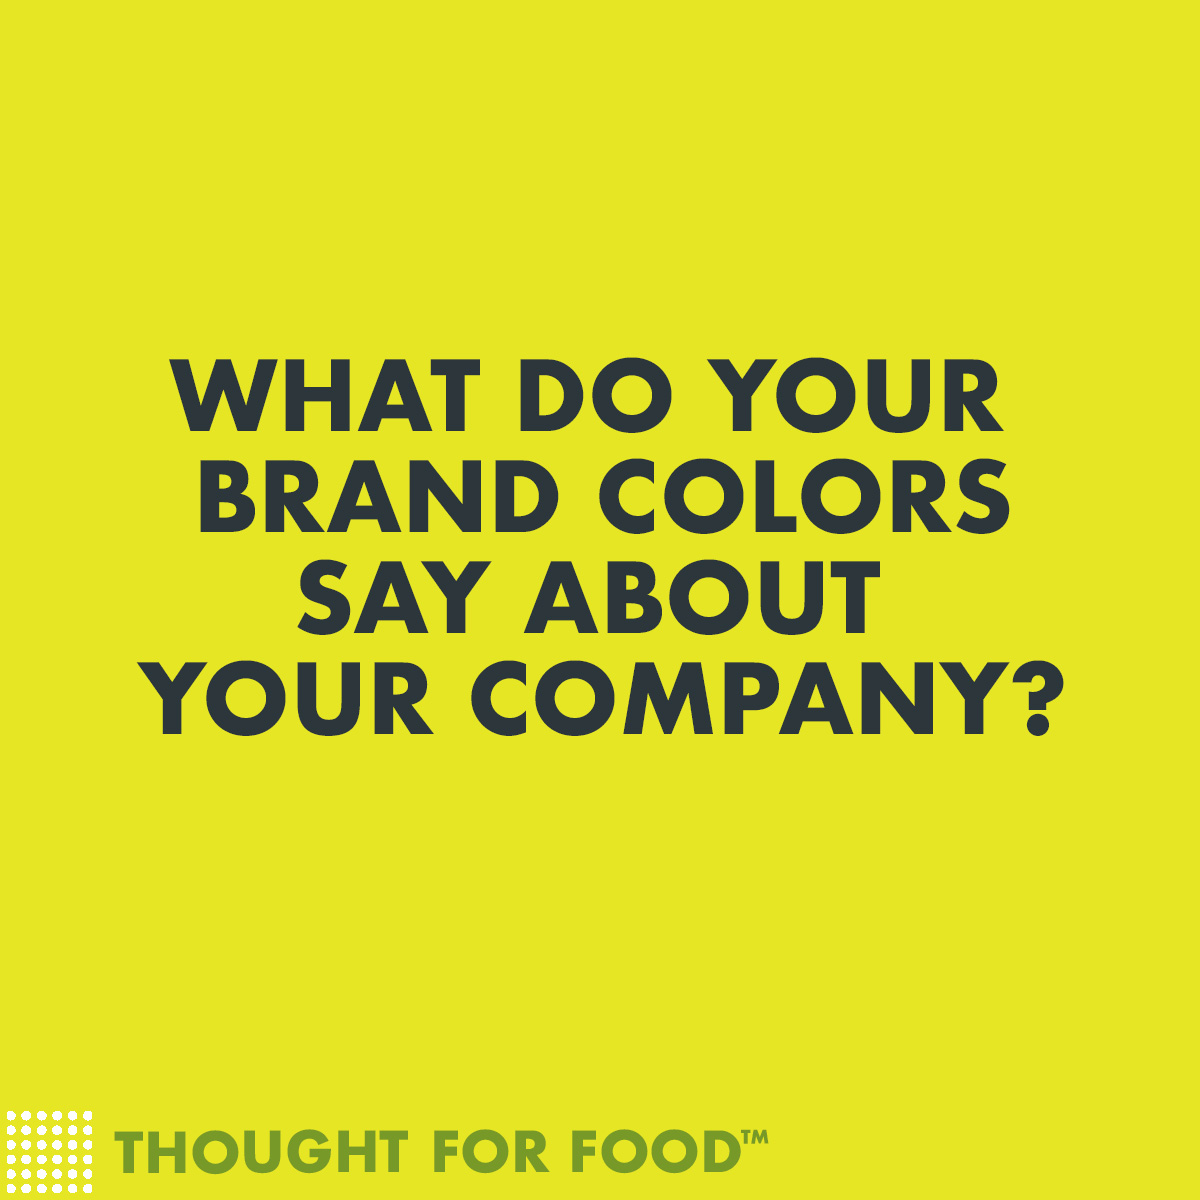 What do your brand colors say about your company?